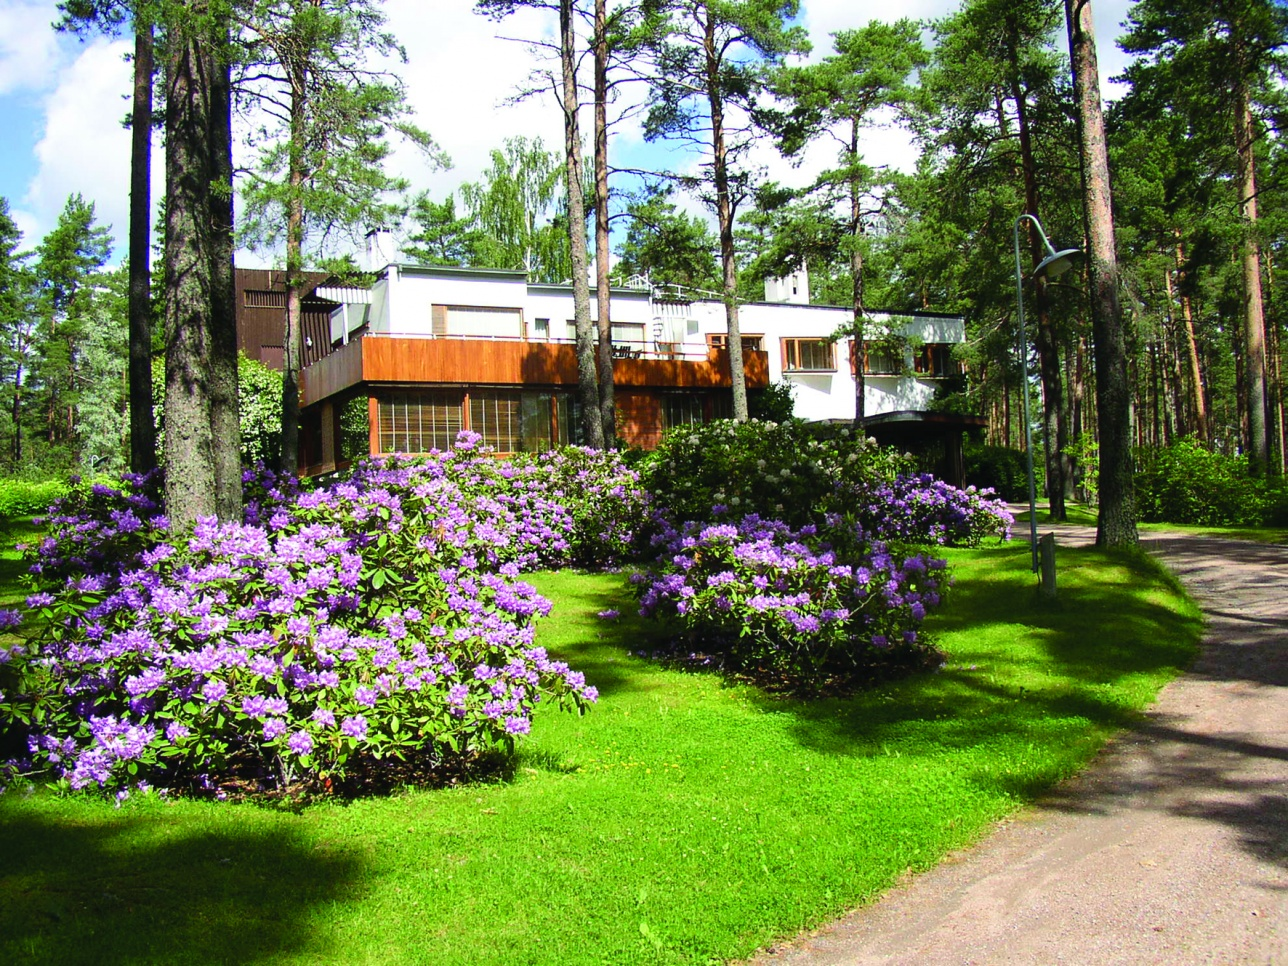 Villa Mairea, a jewel of modernism, is a must for admirers of modern architecture and Alvar Aalto's works.